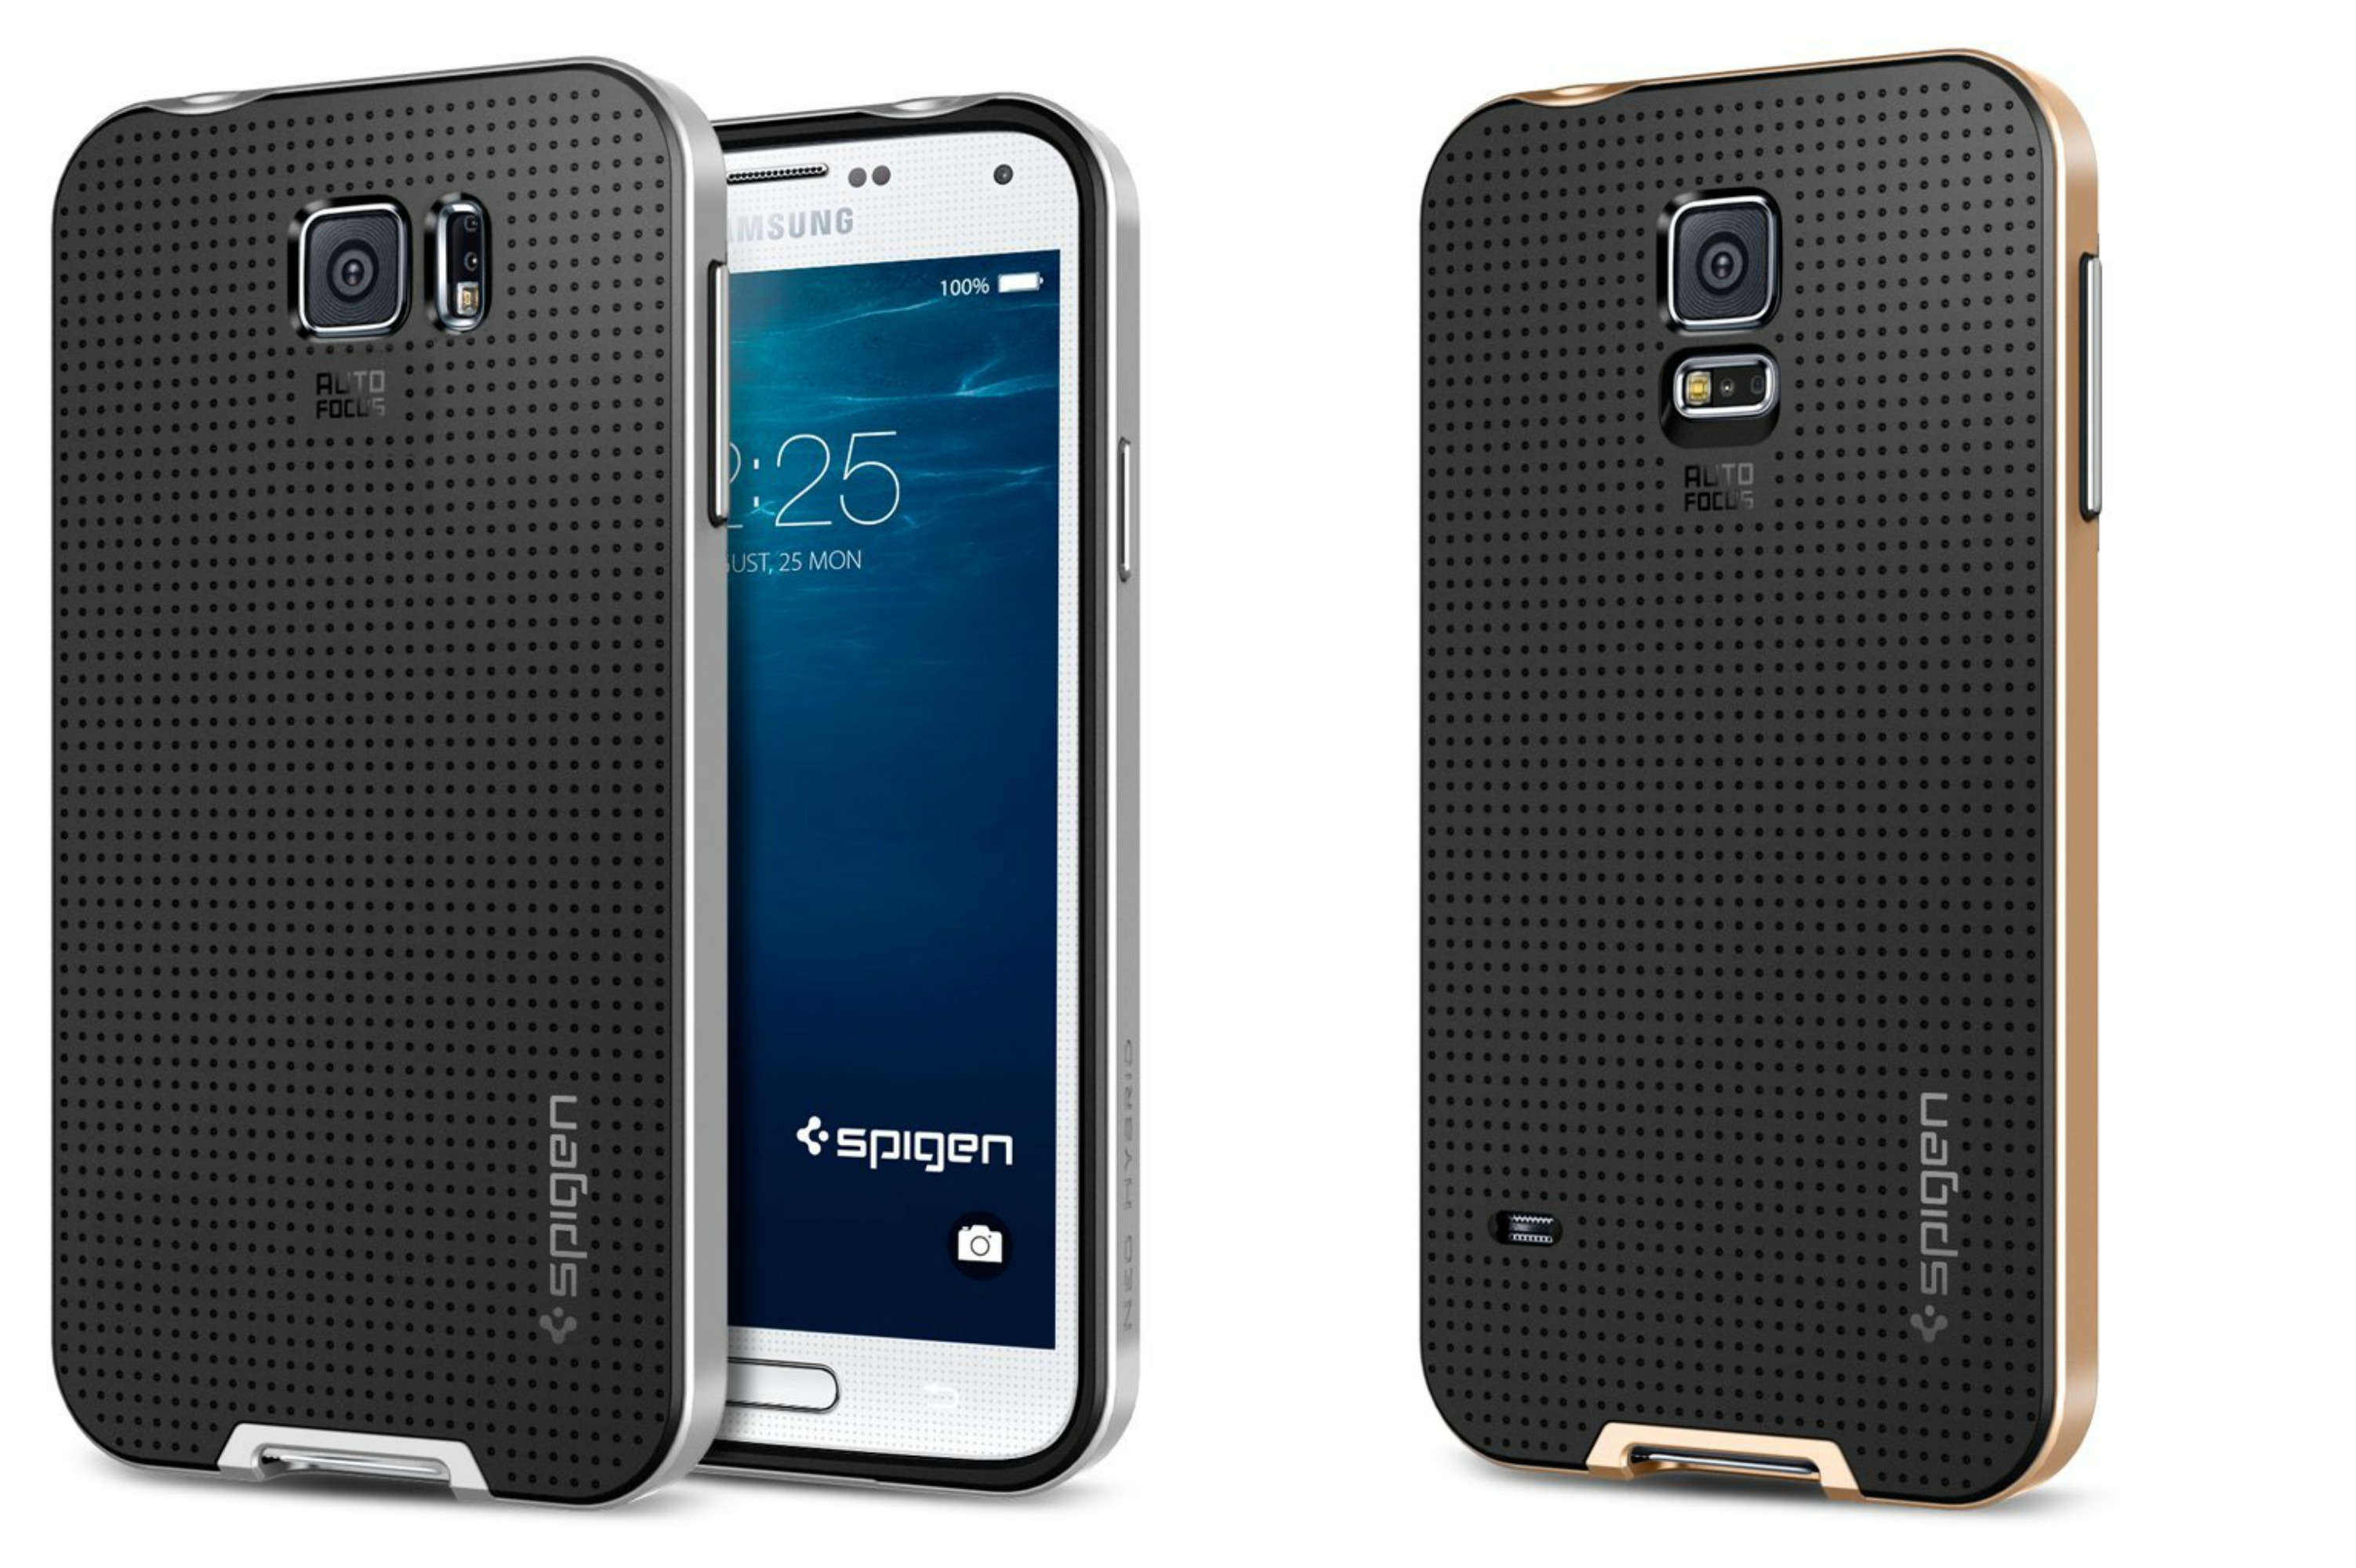 Galaxy S6 cases, shows subtle differences from their Galaxy S5 cases